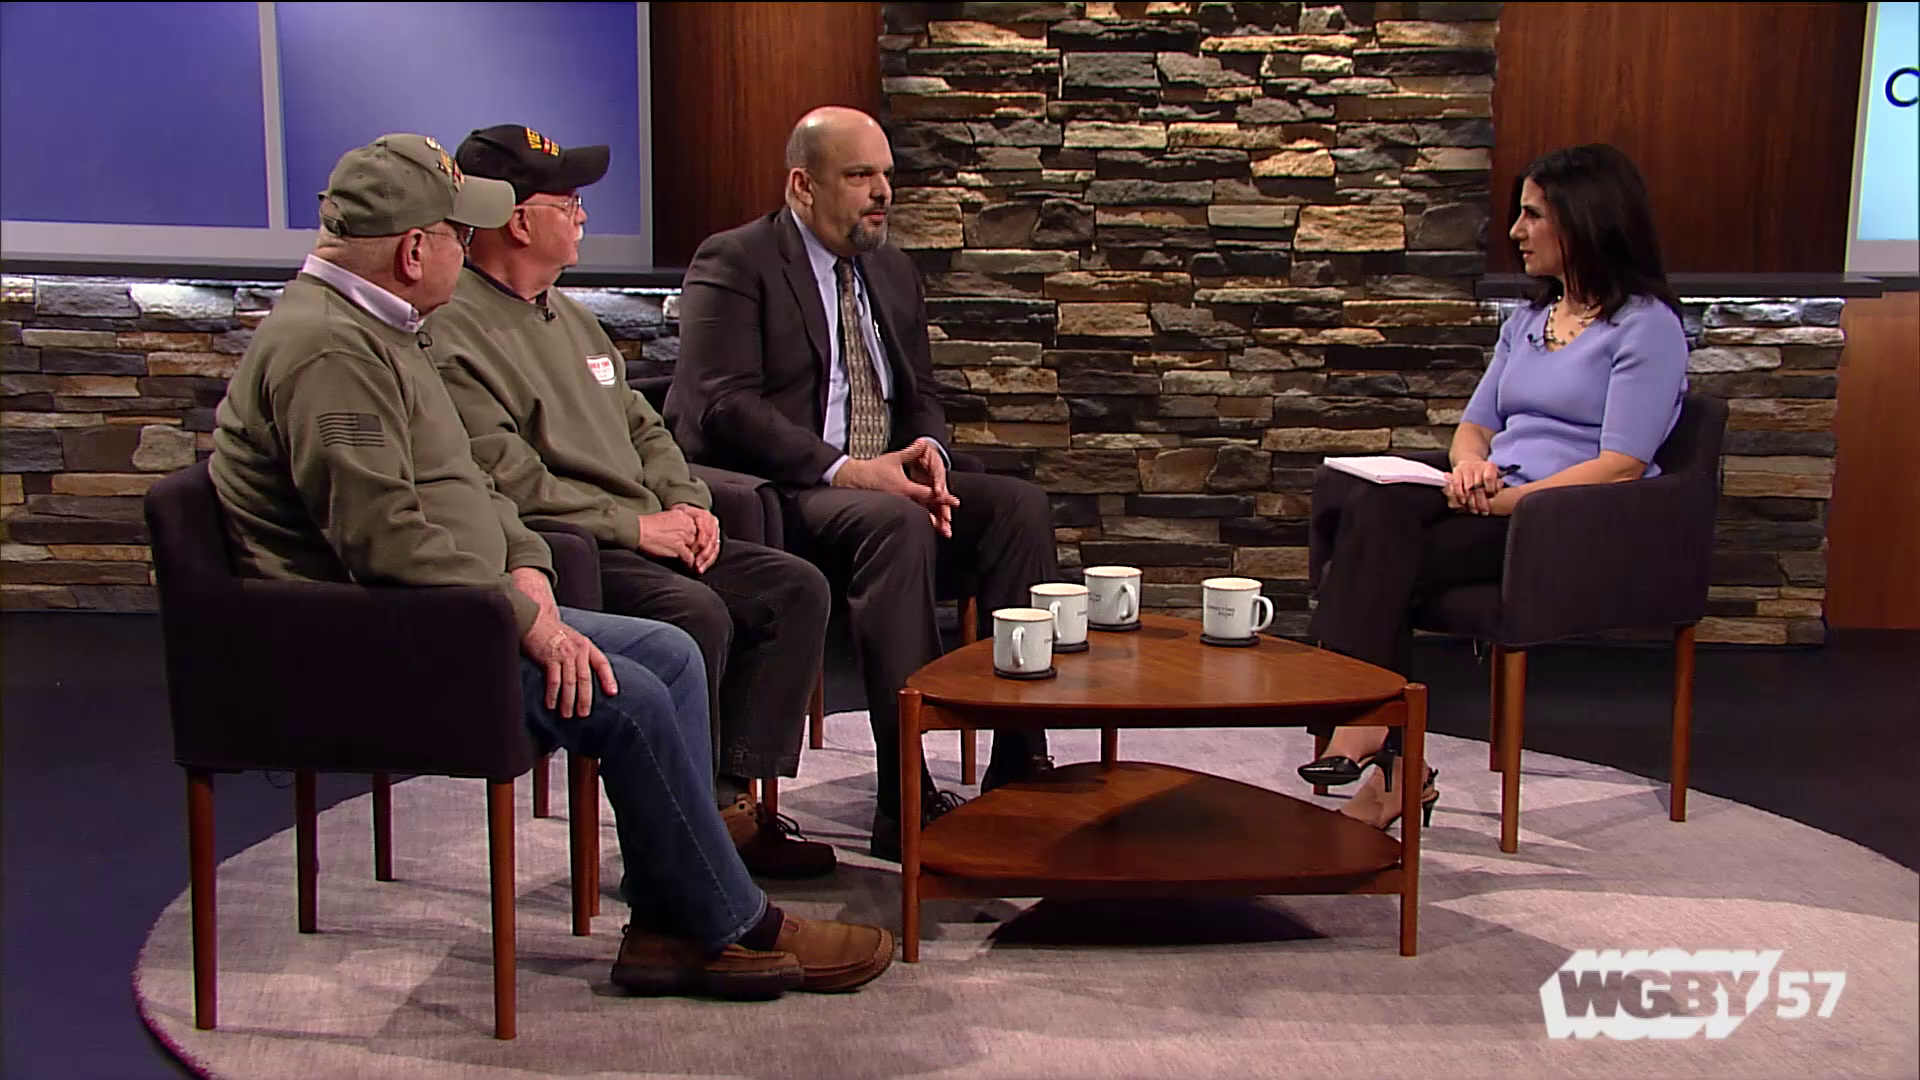 On March 29, 2018 National Vietnam Veterans Day will be honor and recognize men and women who served during the Vietnam War. Vietnam veterans Arlyn Wyman and Francis Langer, and Springfield Vet Center Director Joe Crego preview how Springfield, MA-area veterans will mark the day with special ceremony beginning at 10am.